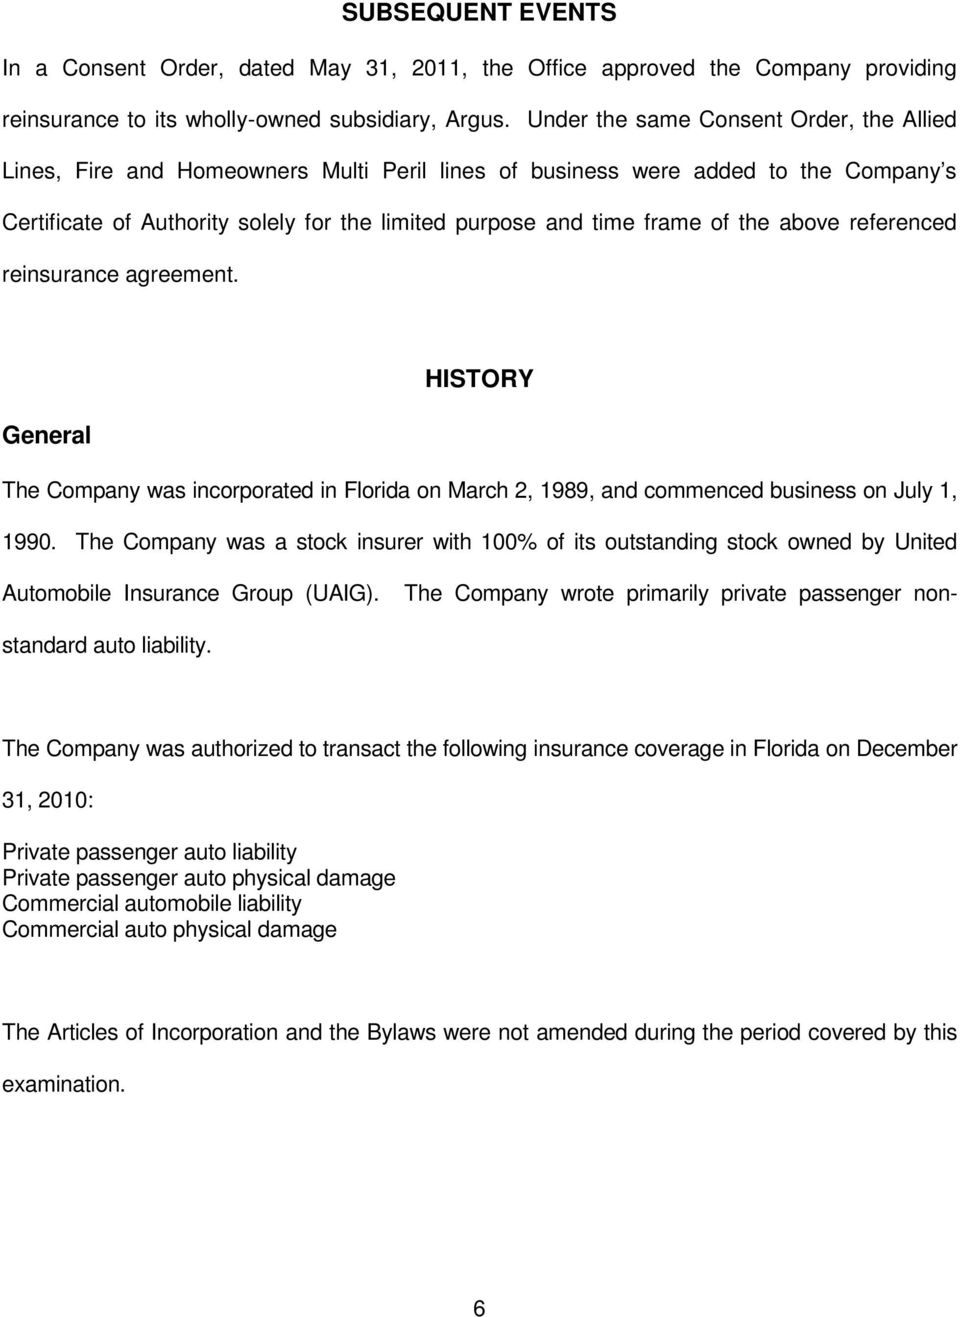 the above referenced reinsurance agreement. HISTORY General The Company was incorporated in Florida on March 2, 1989, and commenced business on July 1, 1990.